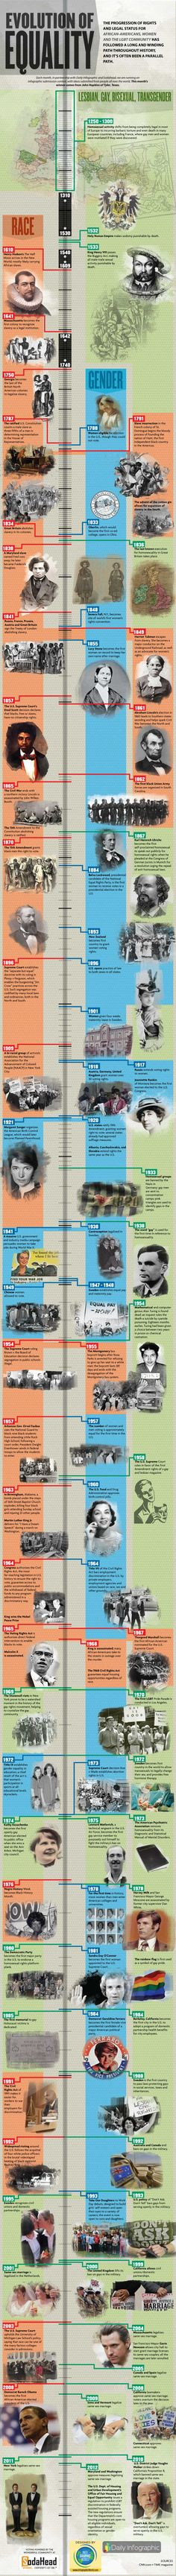 The Evolution of Equality #HR #Infographic